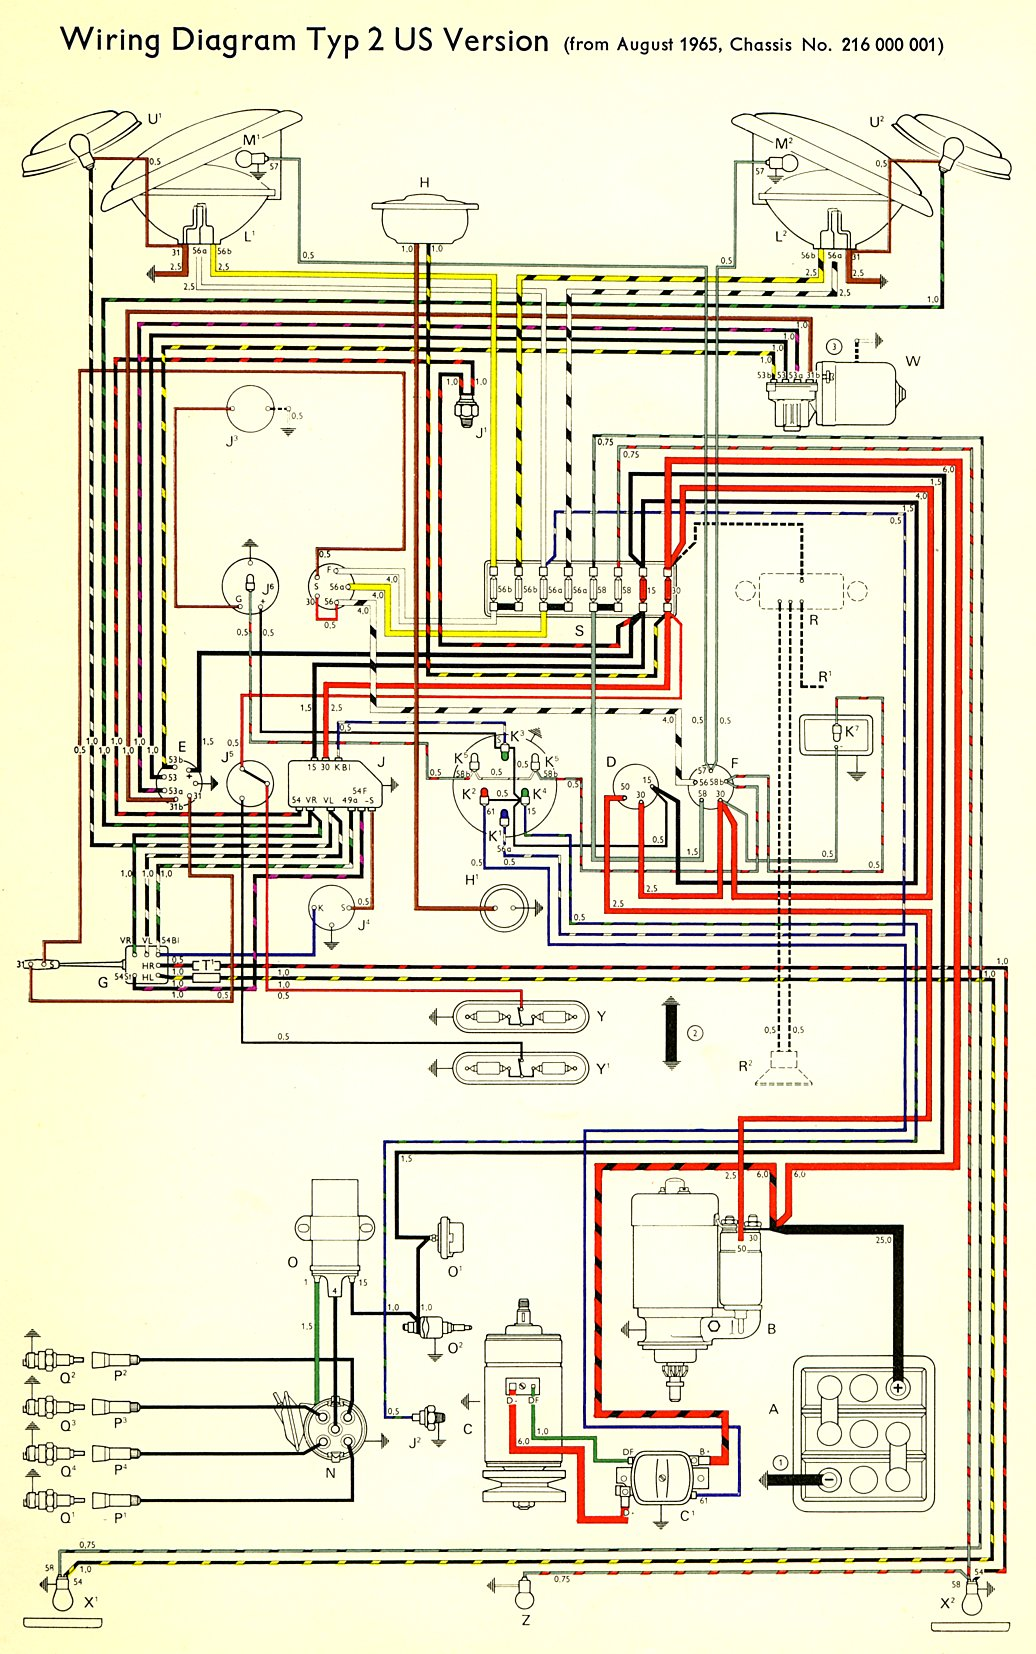 Wiring Diagram For 1973 Vw Beetle